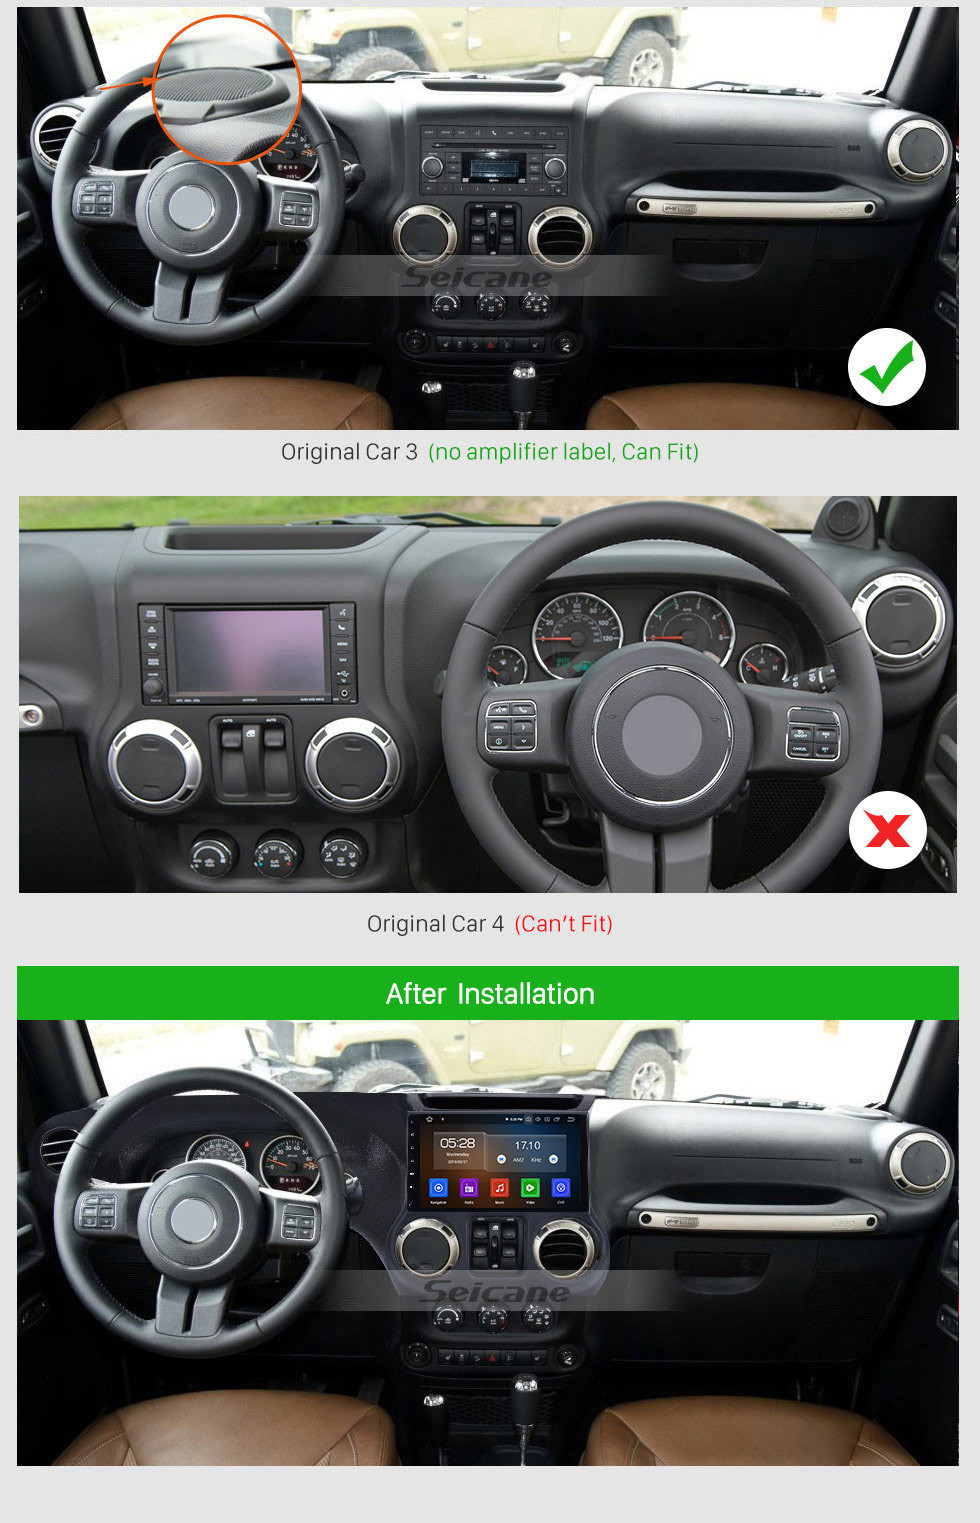 Seicane Android 10.0 10,1 pouces Radio à écran tactile pour 2011-2017 JEEP Wrangler Bluetooth Musique GPS Navigation Head Unit Support Mirror Link DAB + OBDII USB TPMS WiFi Contrôle du volant